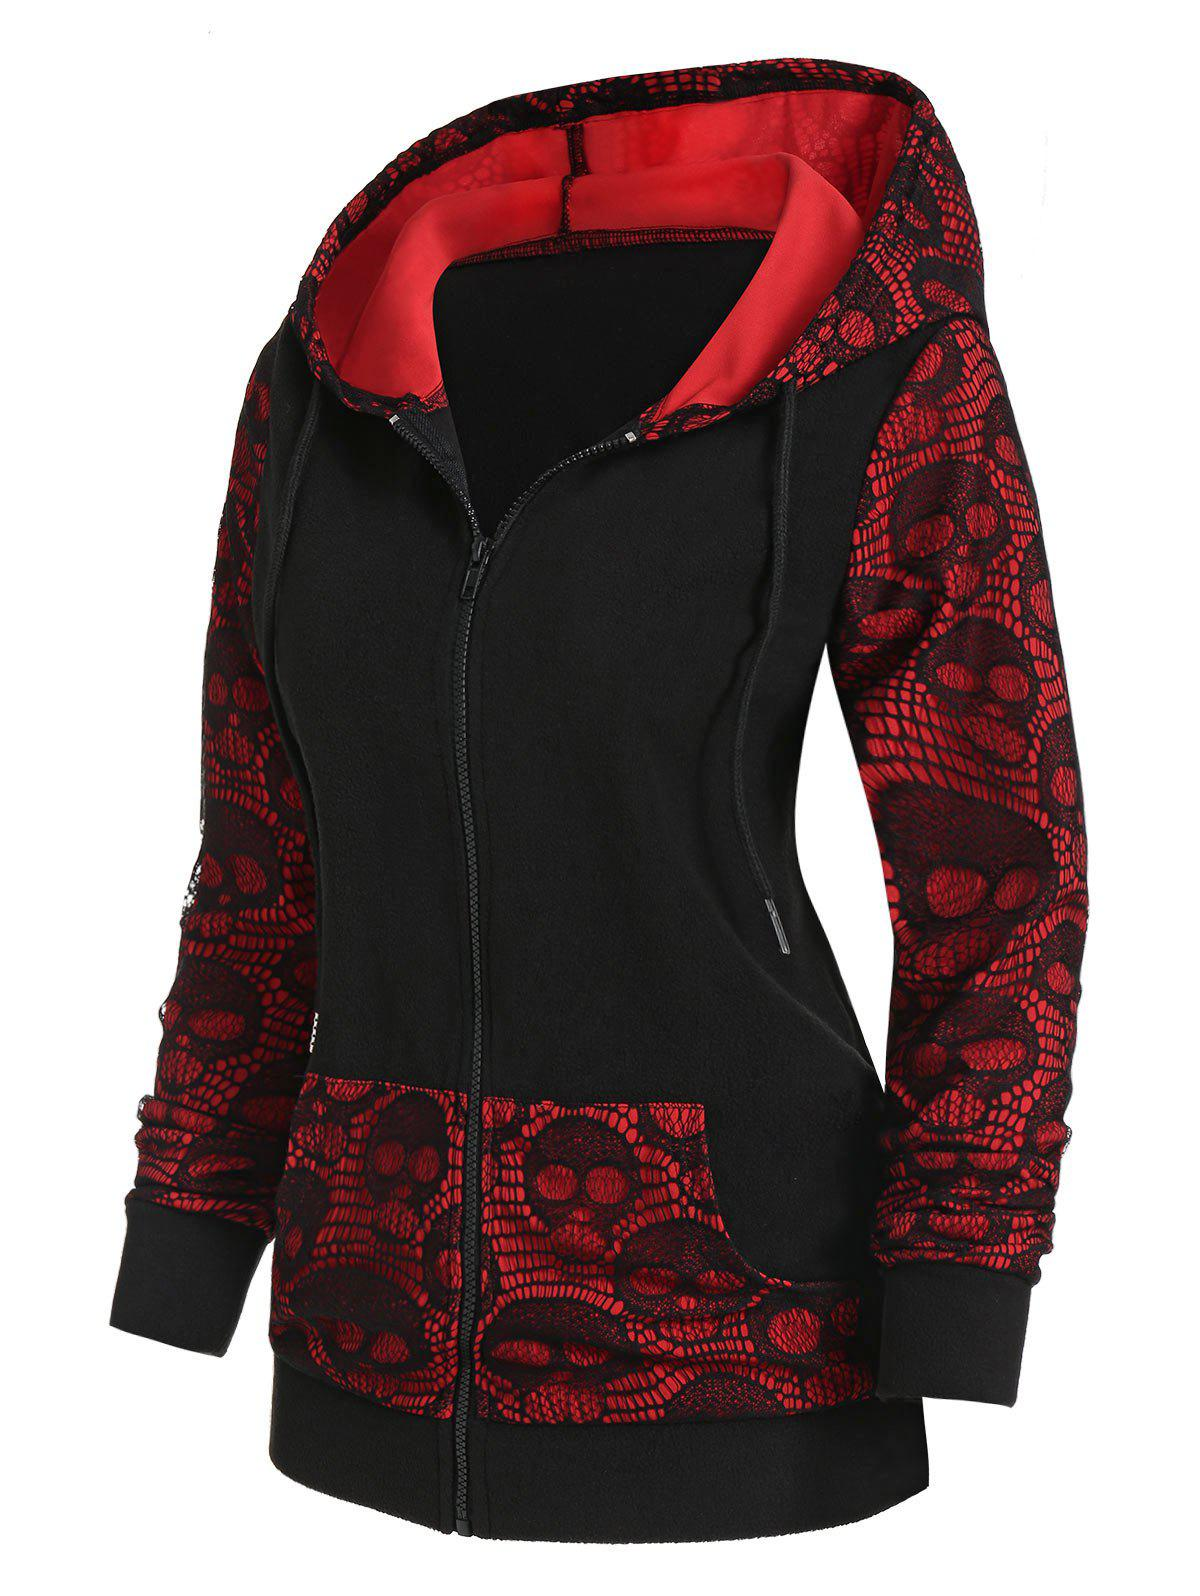 Fashion Skull Graphic Lace Panel Zip Up Hoodie